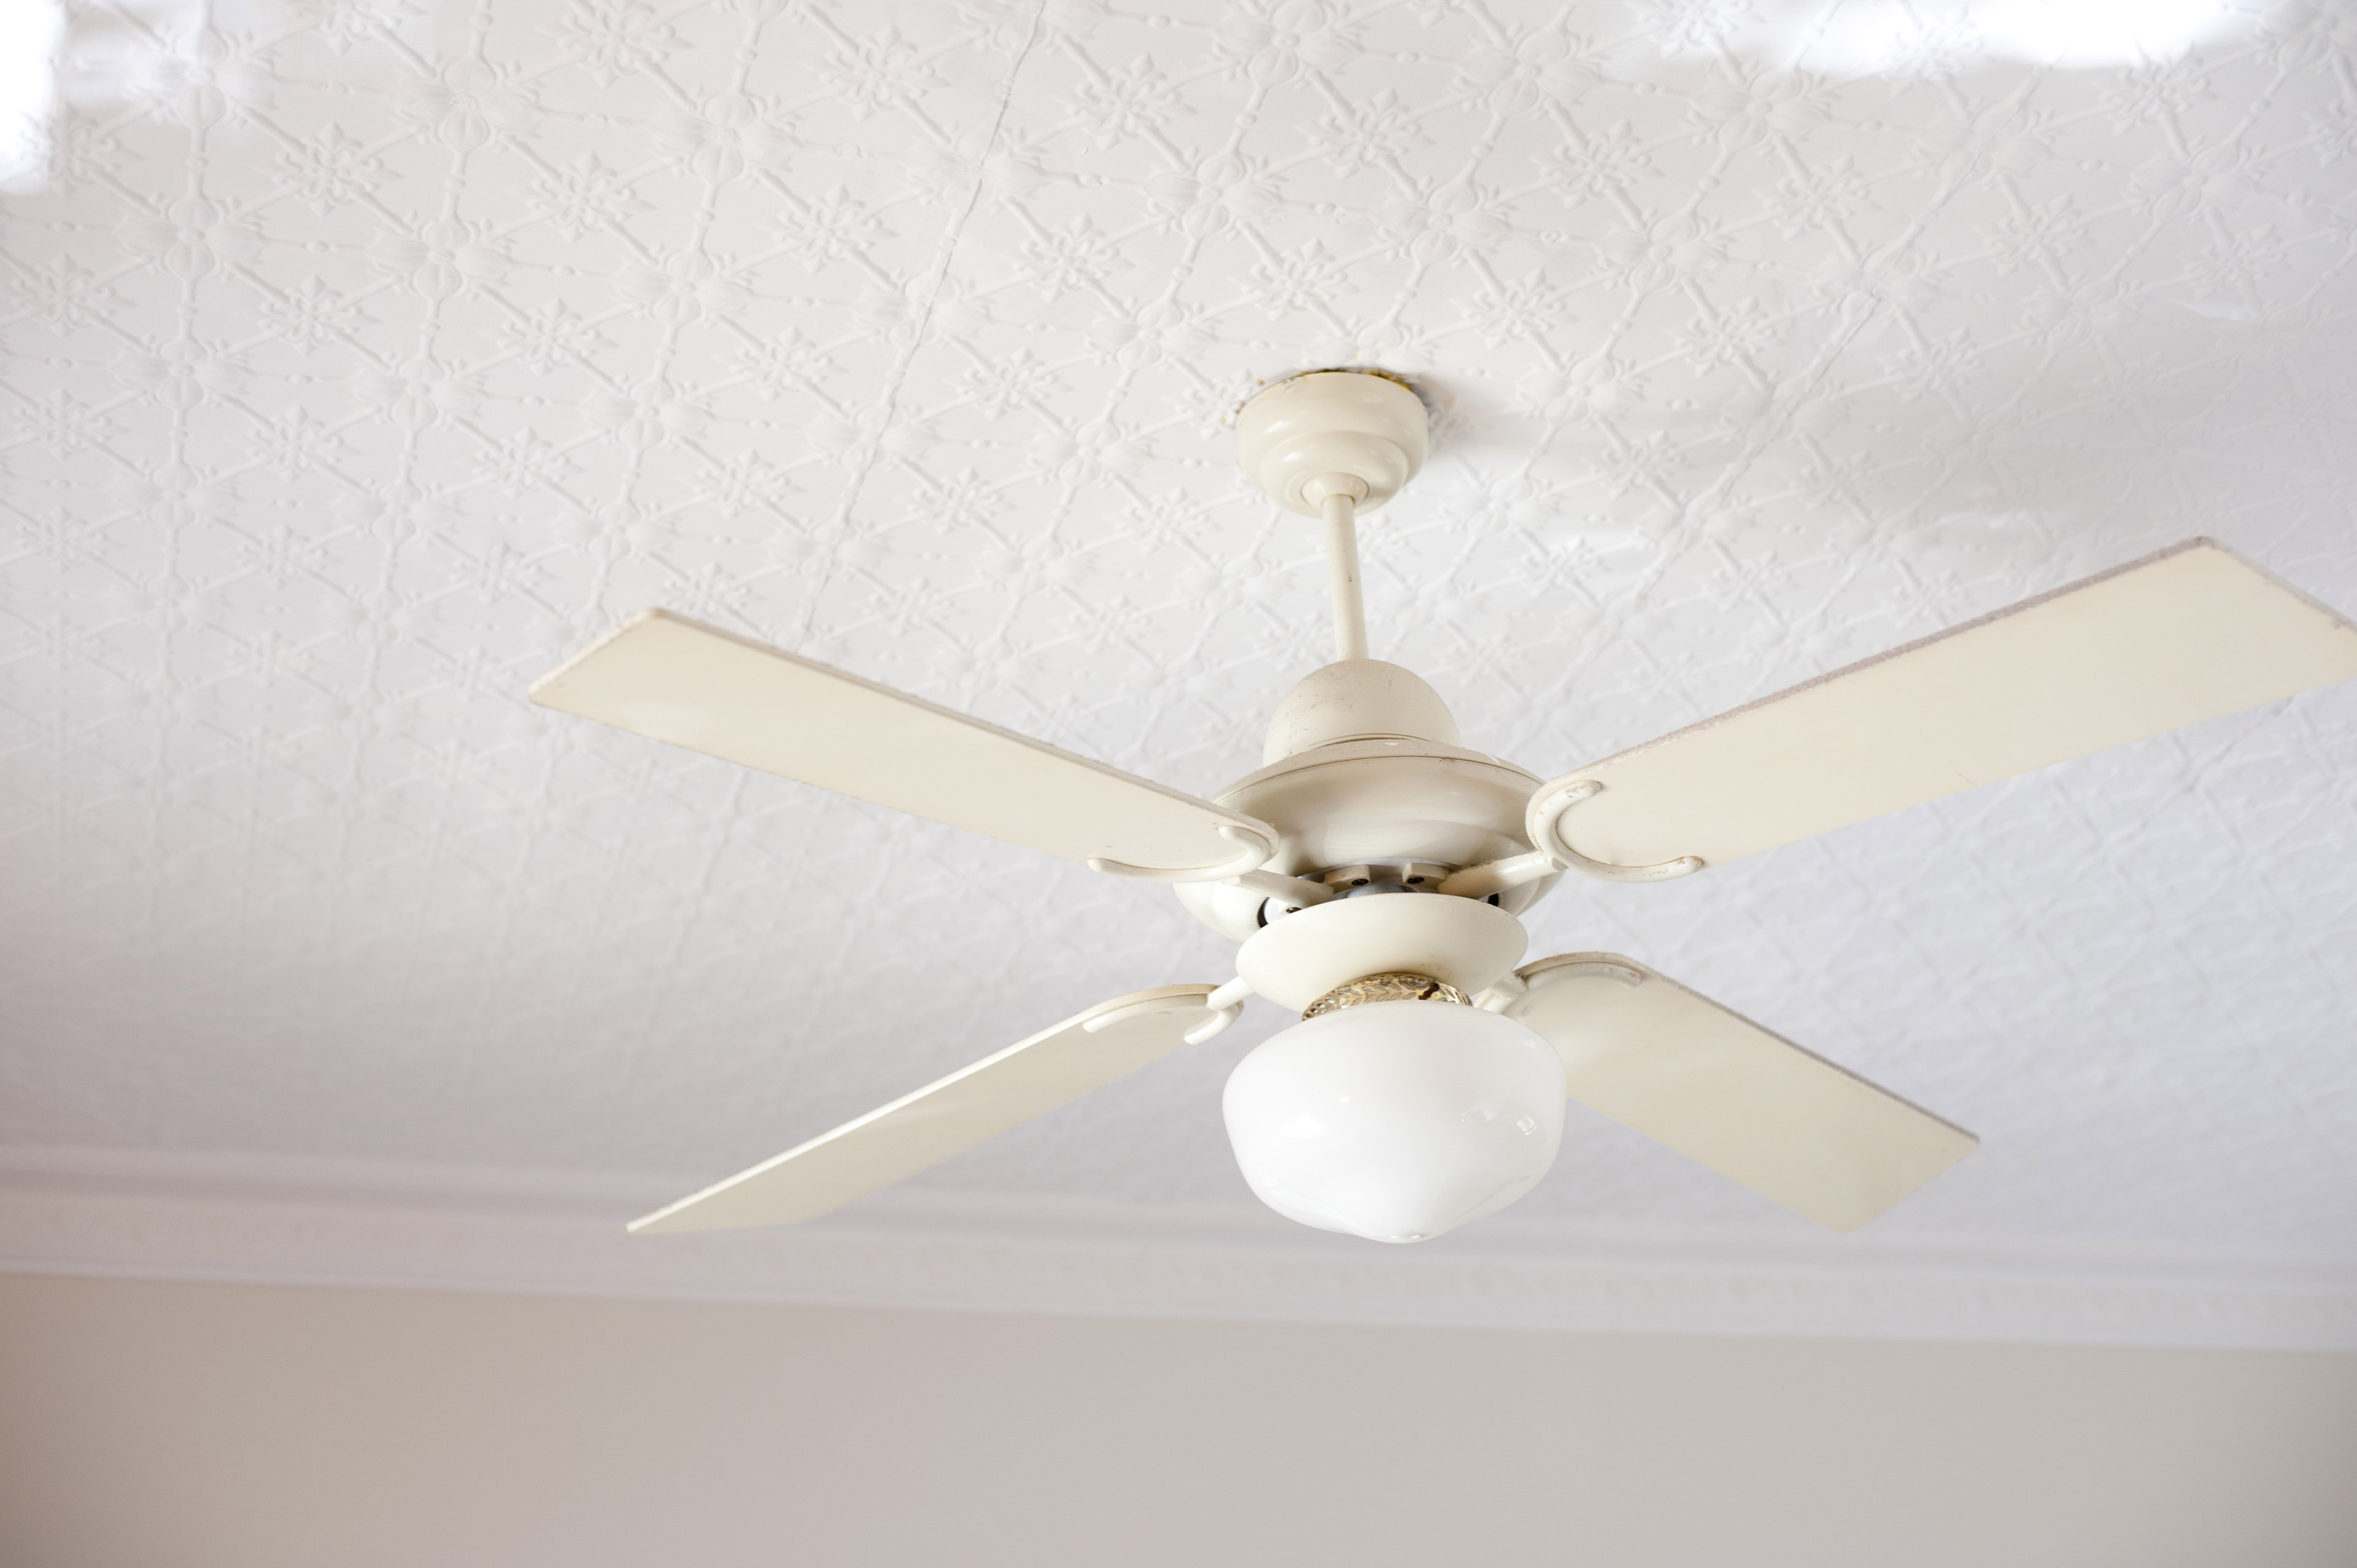 Free Image Of Retro Ceiling Fan With Light Fixture Freebie Photography